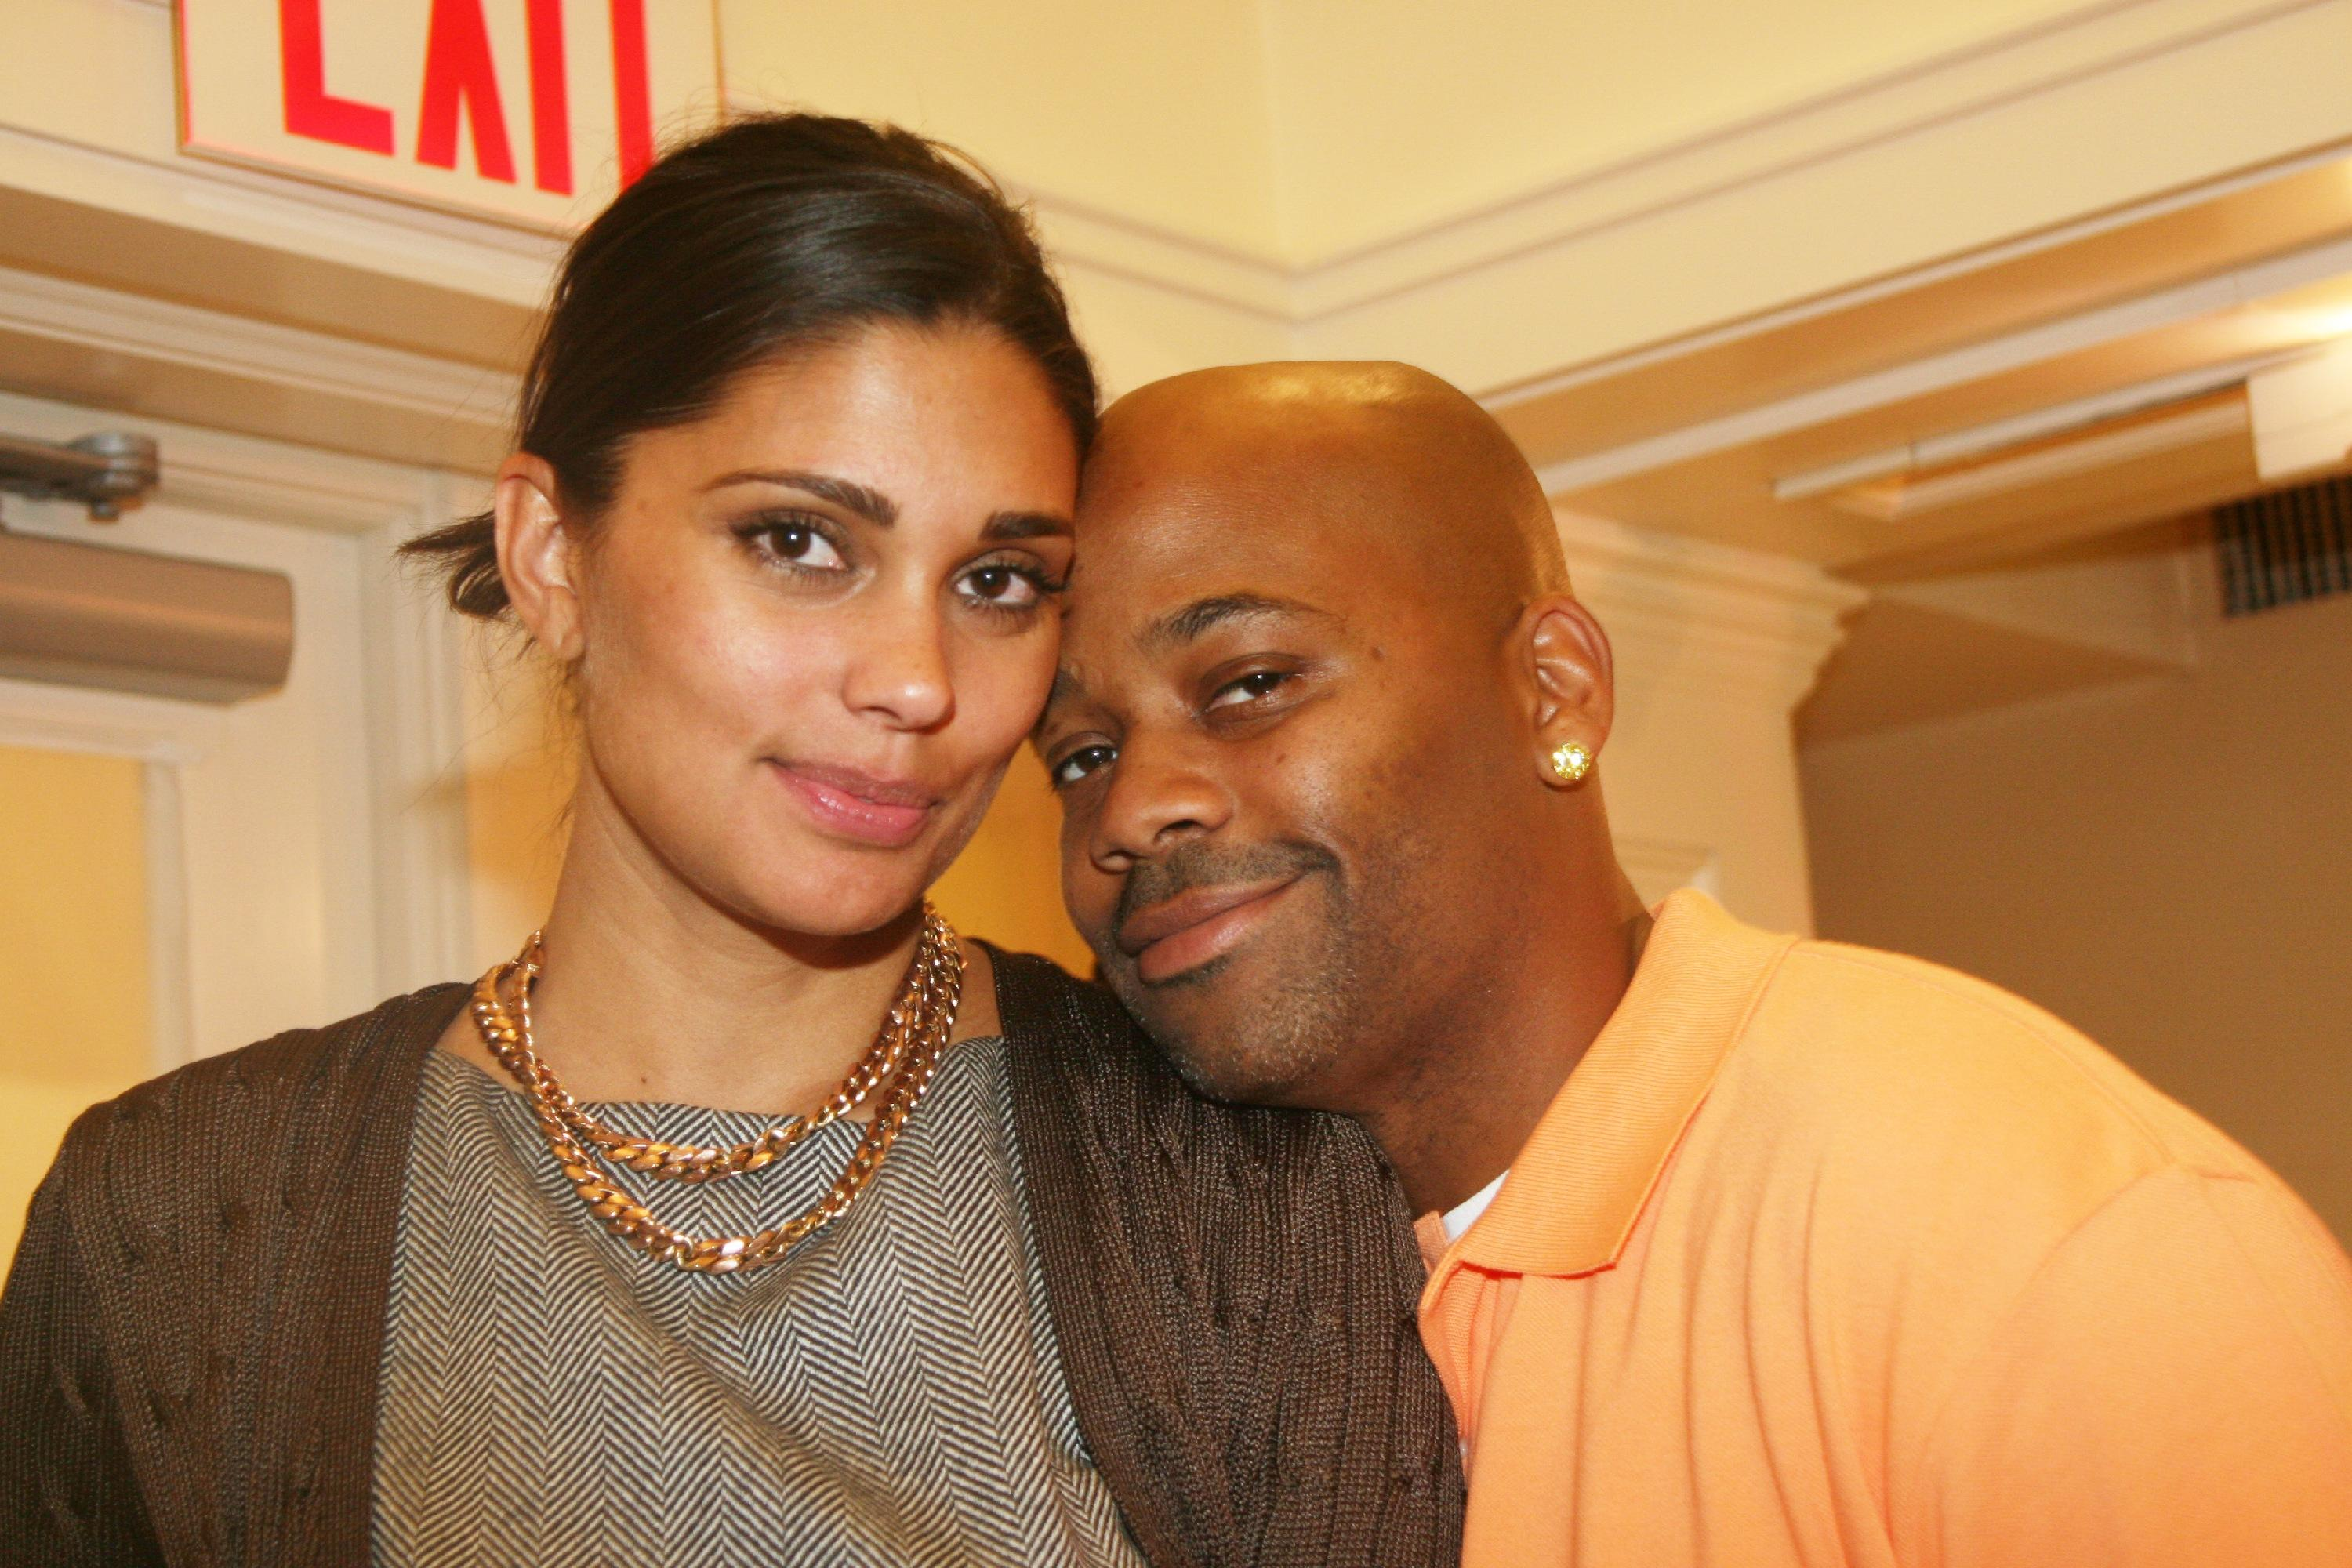 Damon Dash Wants Hundreds-Of-Thousands From Ex-Wife Rachel Roy's Business